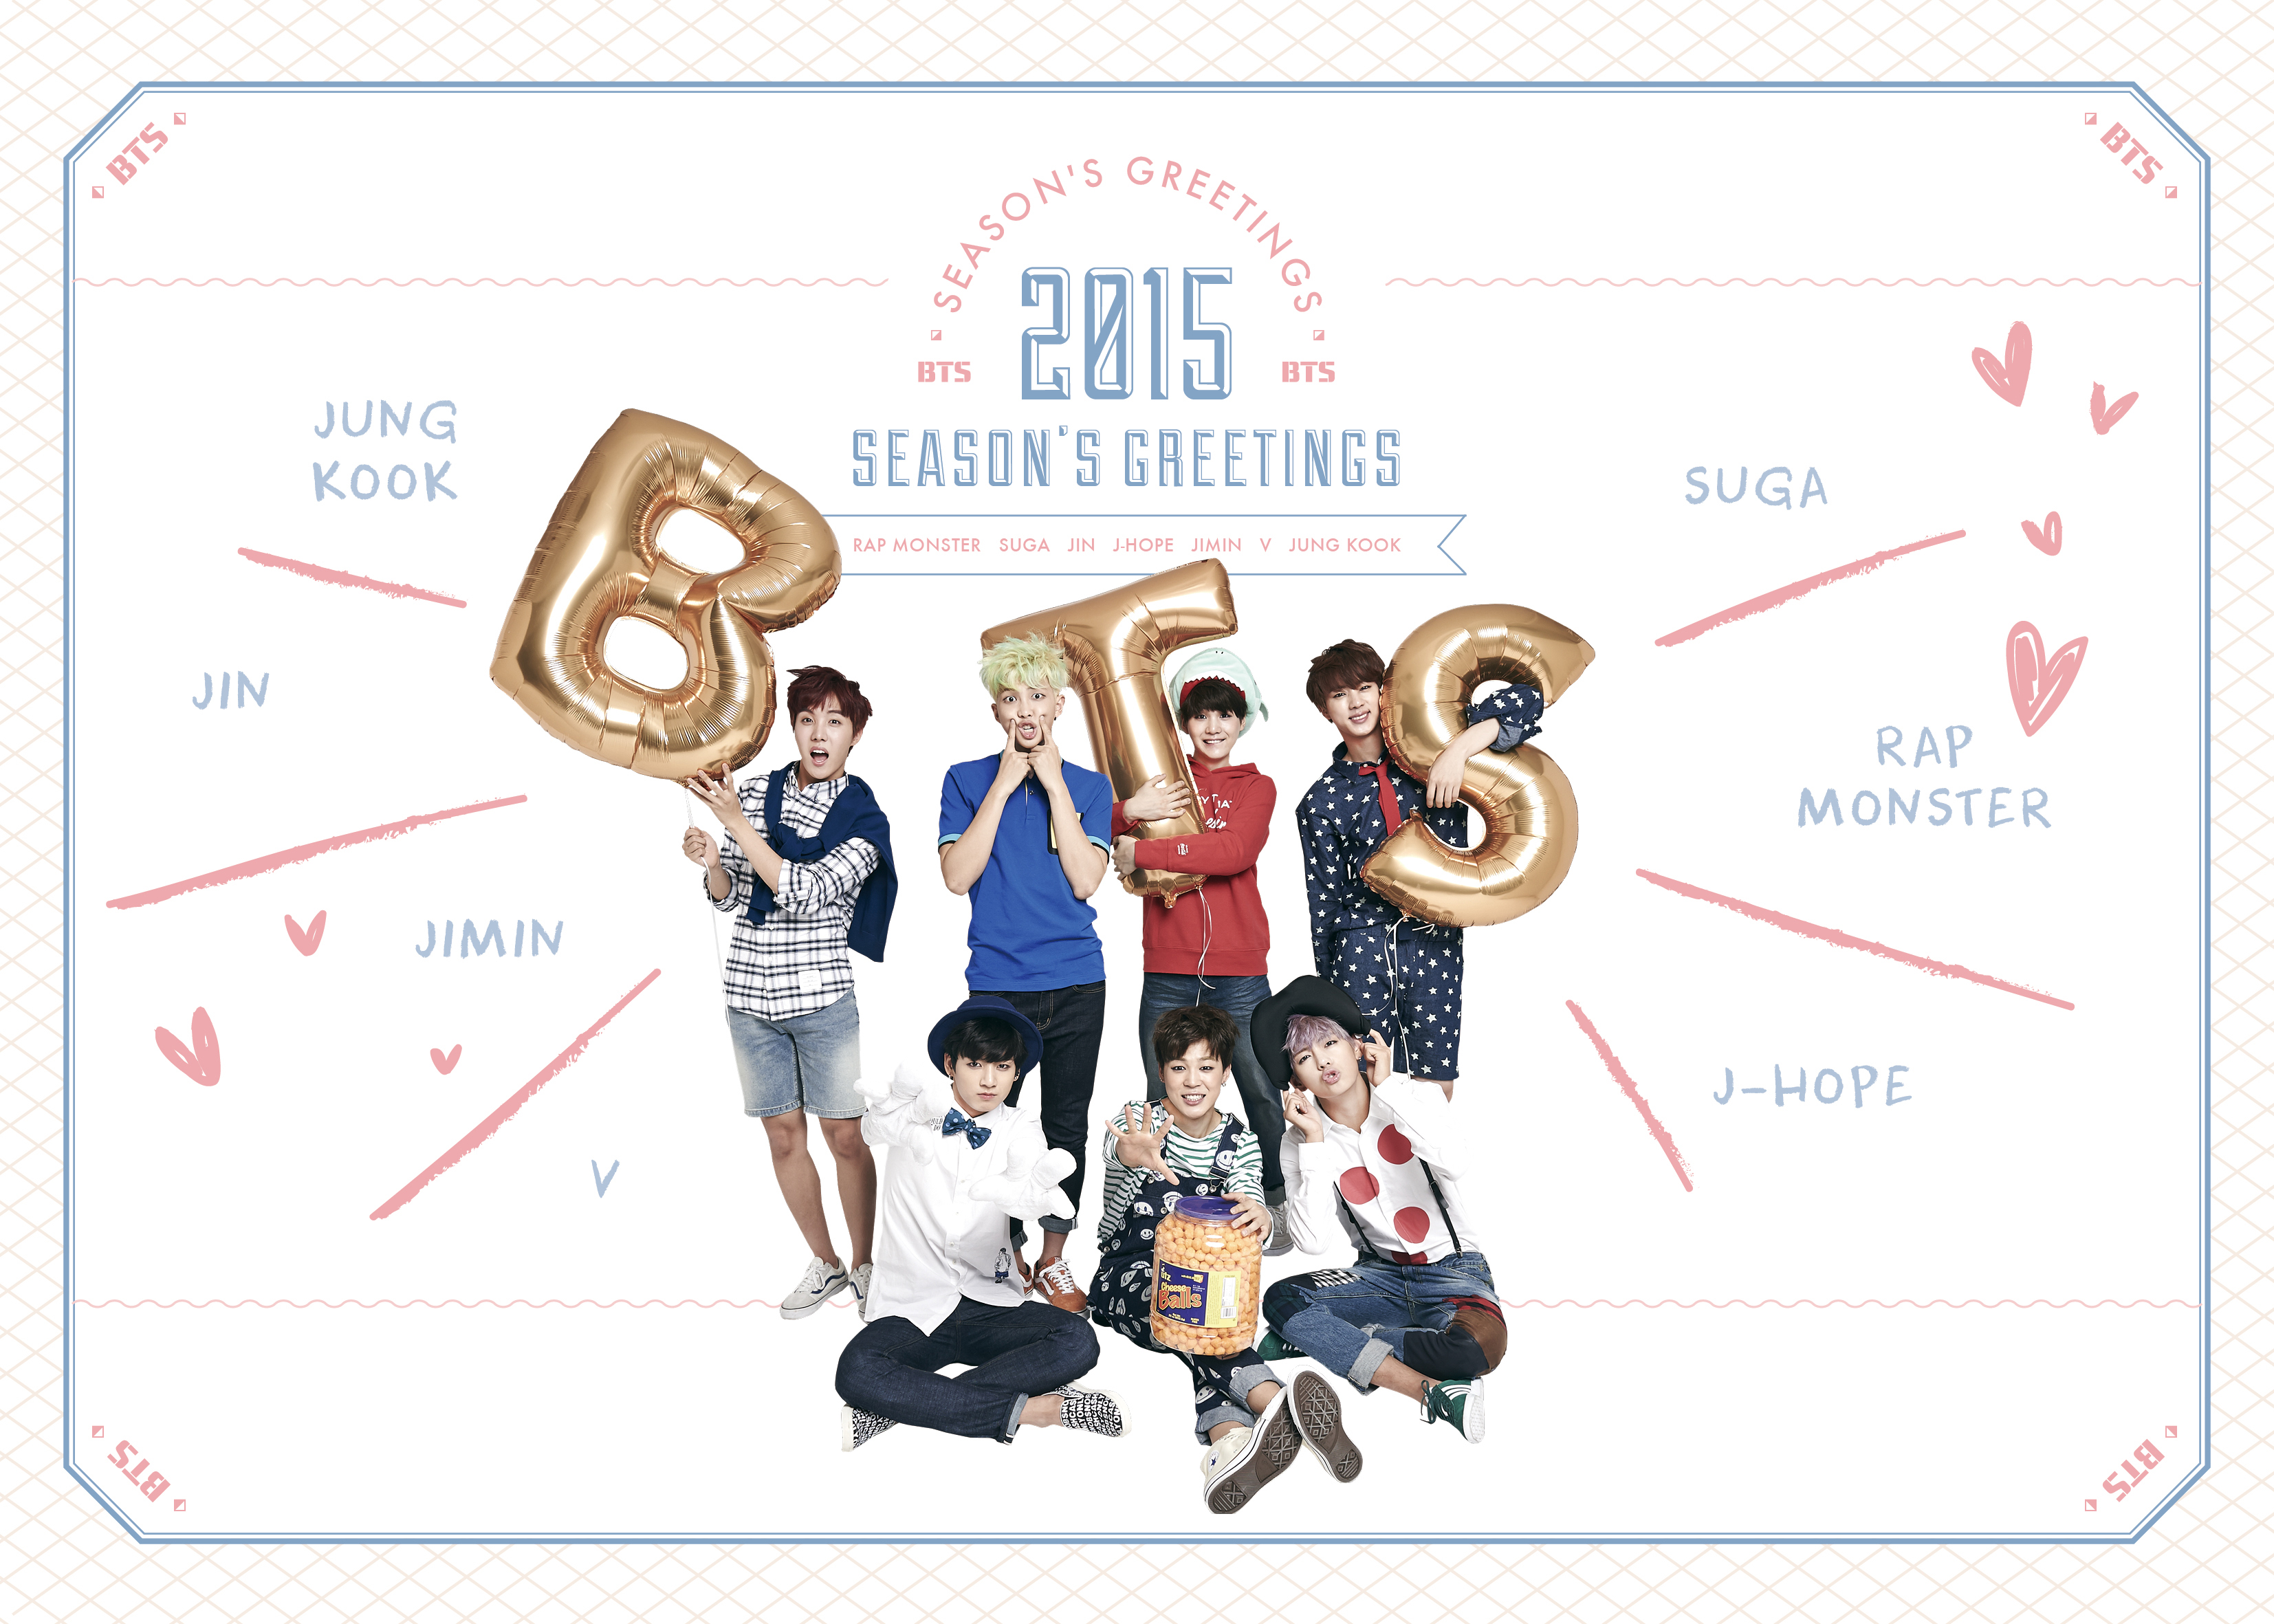 BTS_2015 SEASON'S GREETINGS_COVER